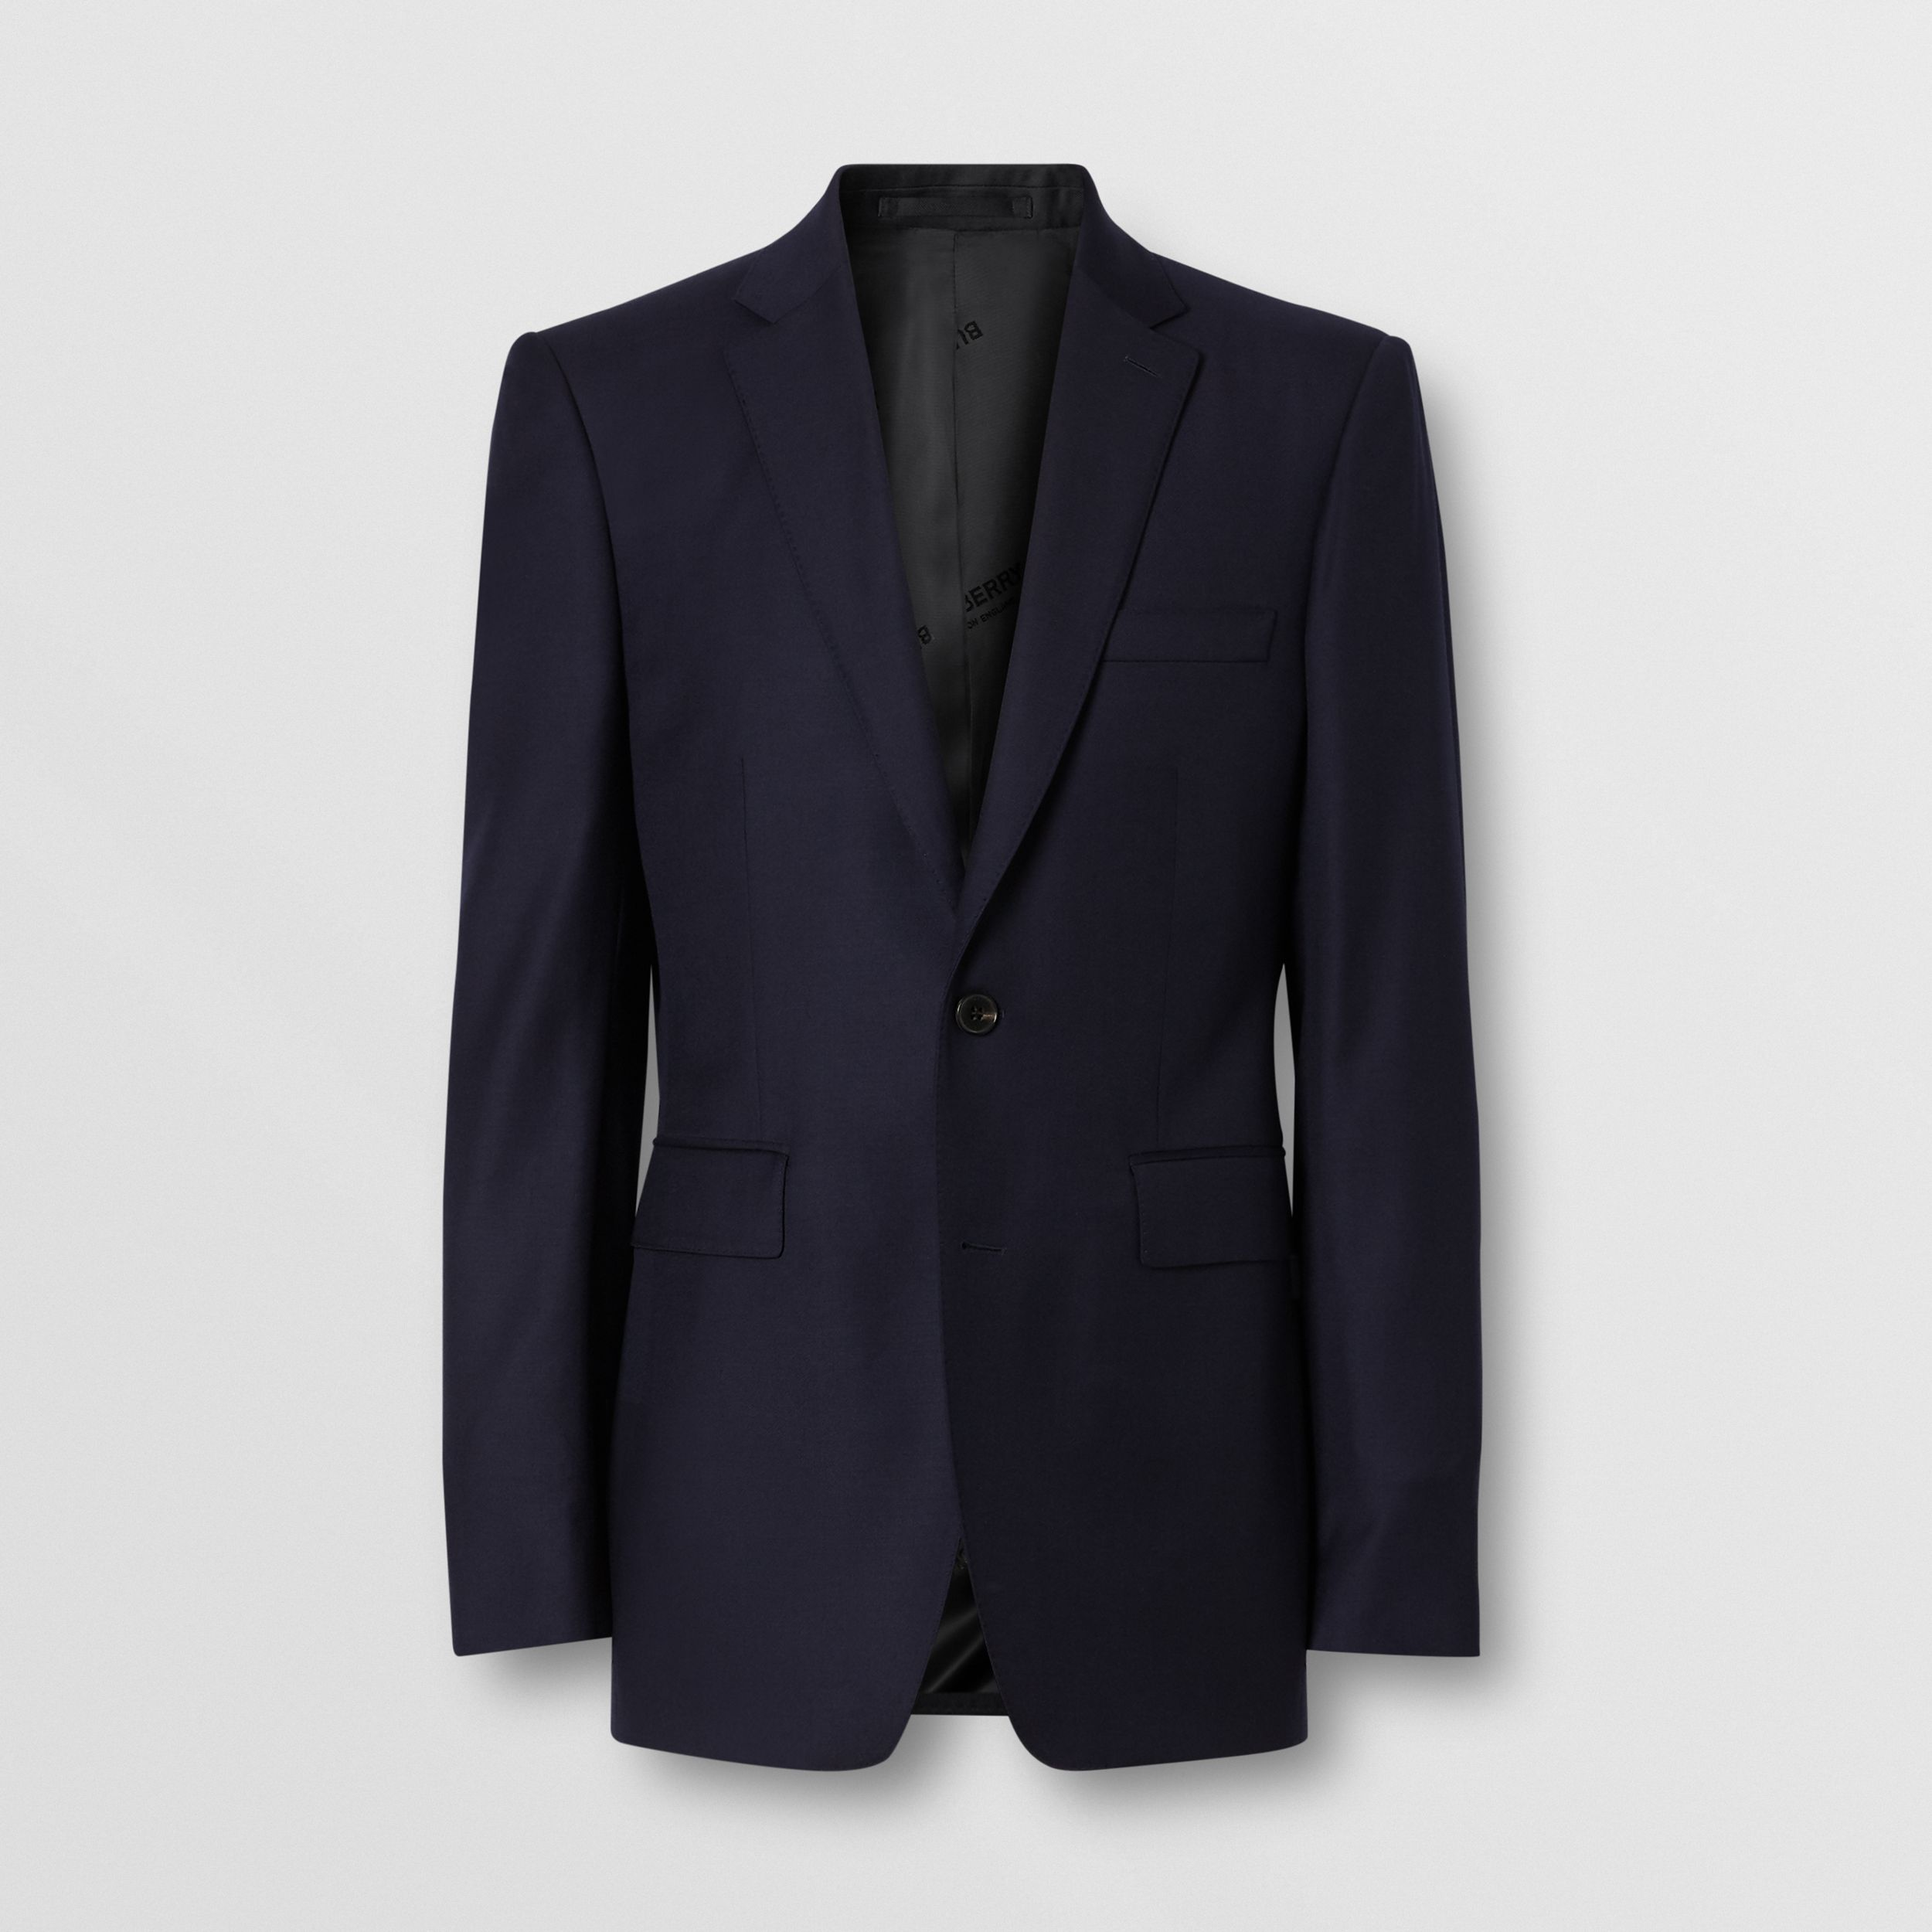 Classic Fit Wool Suit in Navy - Men | Burberry - 4